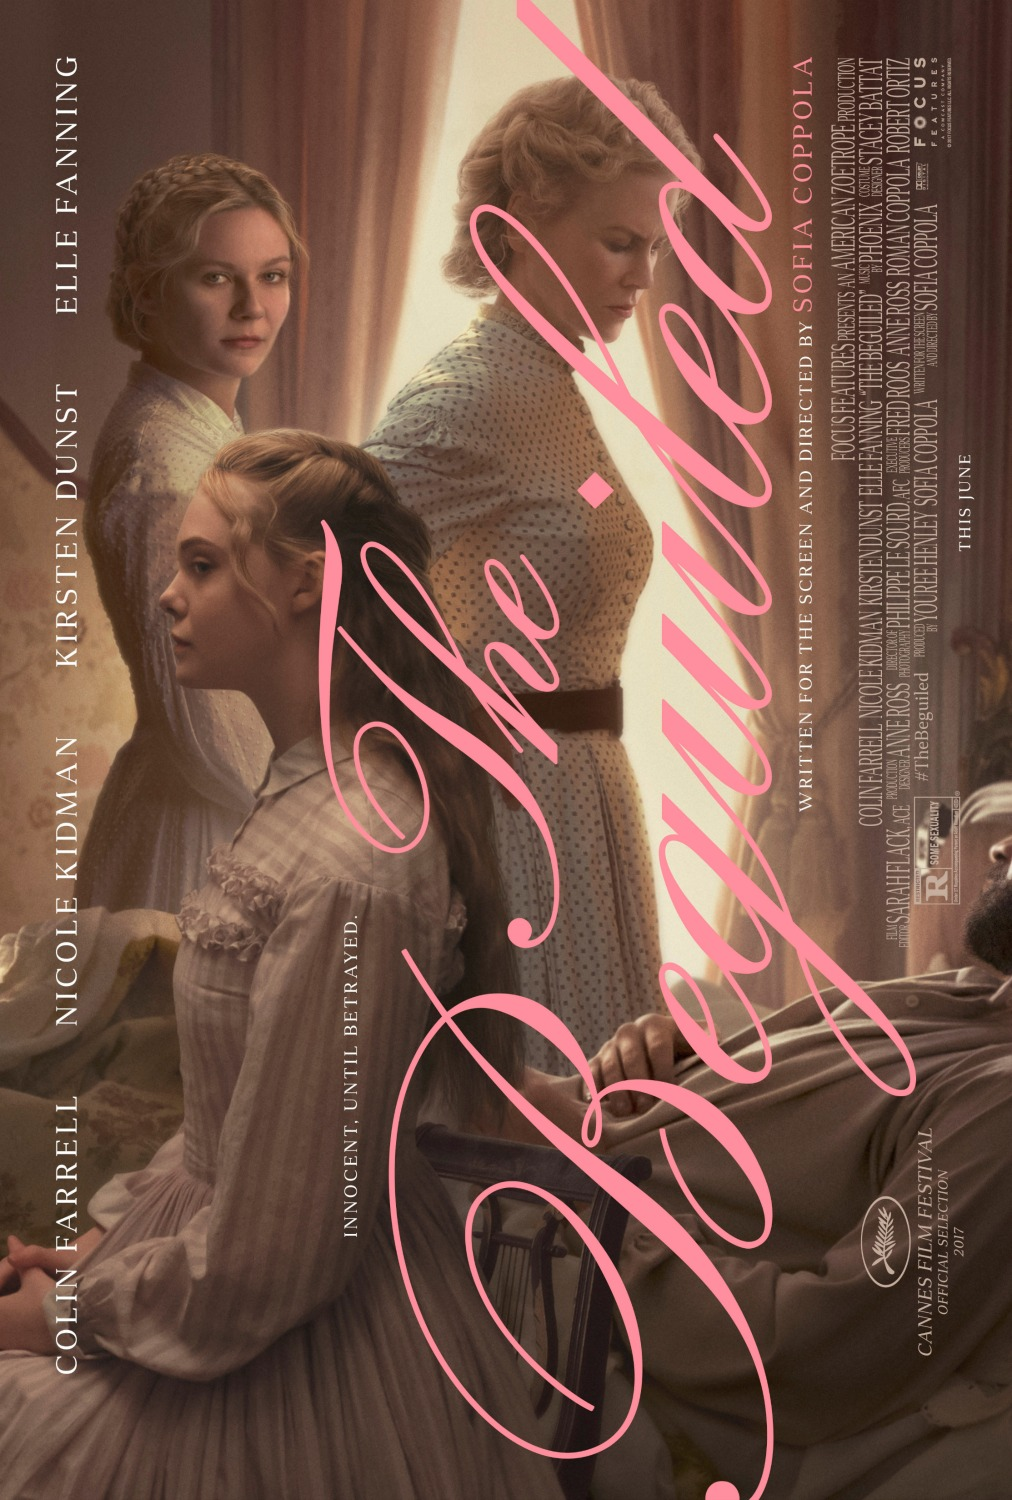 The Beguiled Movie Giveaway #VengefulB*tches